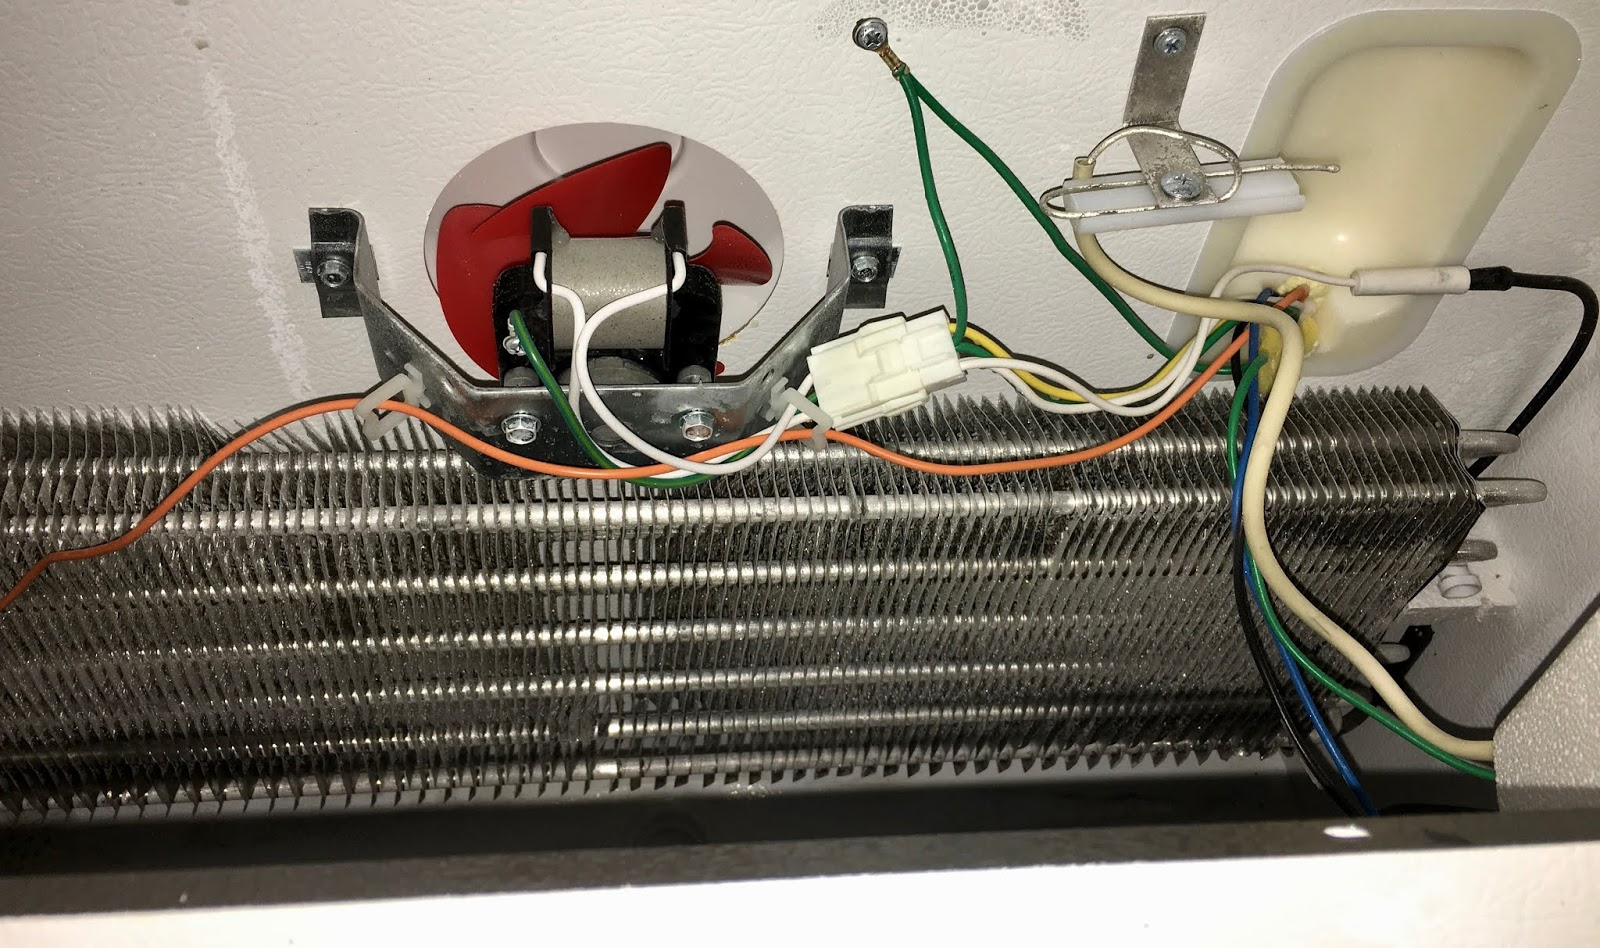 Syonyk's Project Blog: Freezer Repair and Thermostat Teardown